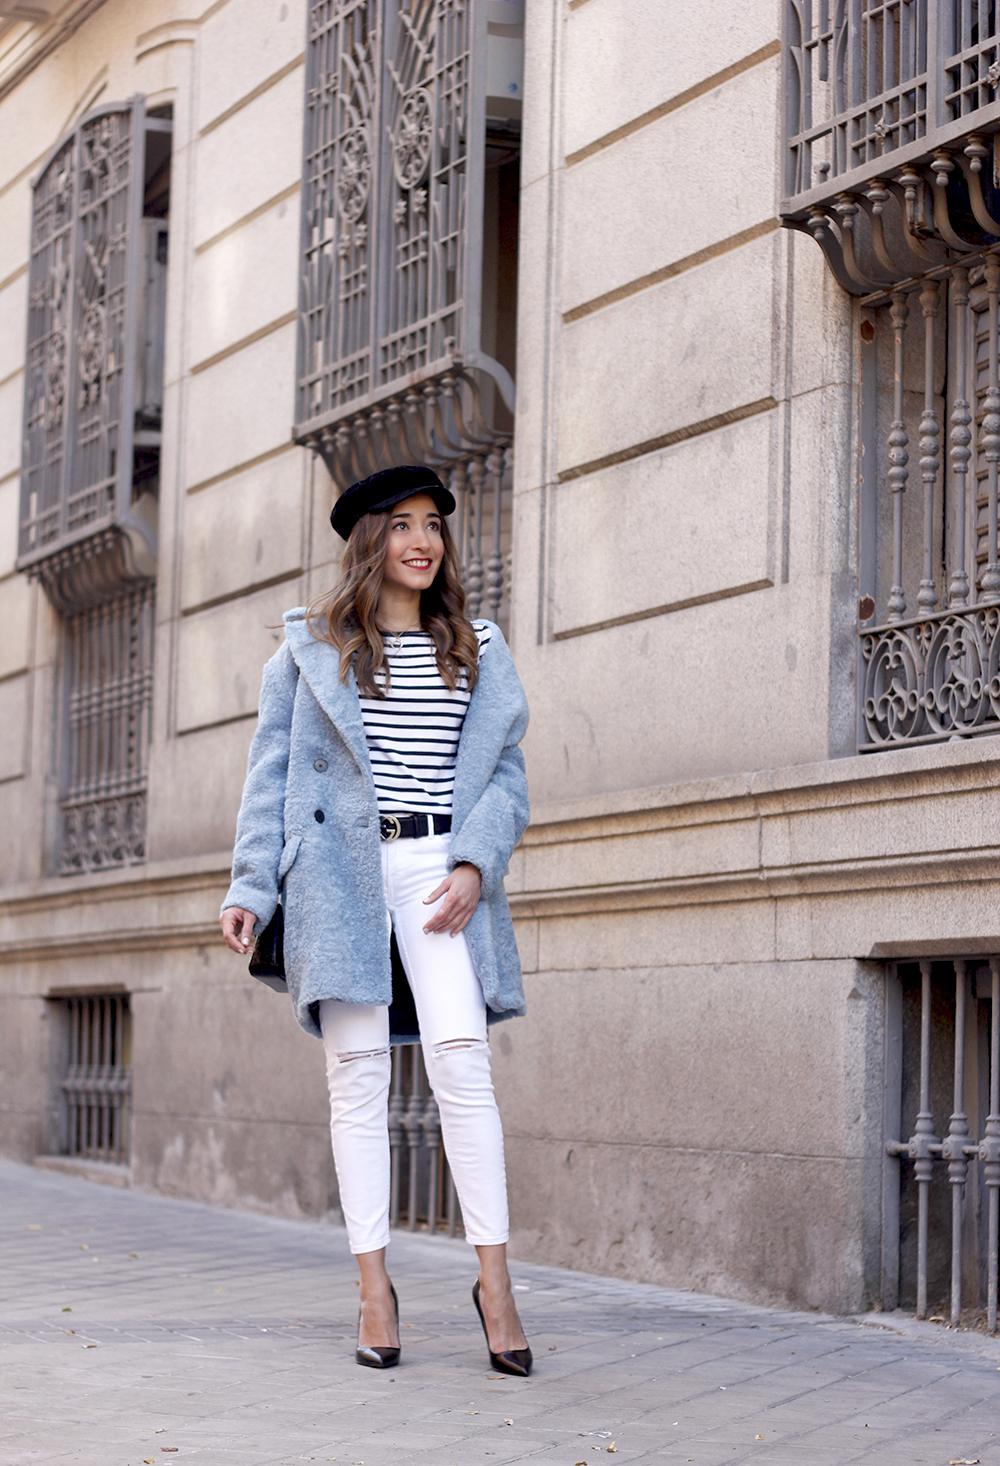 blue fur coat stripes white ripped jeans givenchy bag navy cap fall outfit street style07